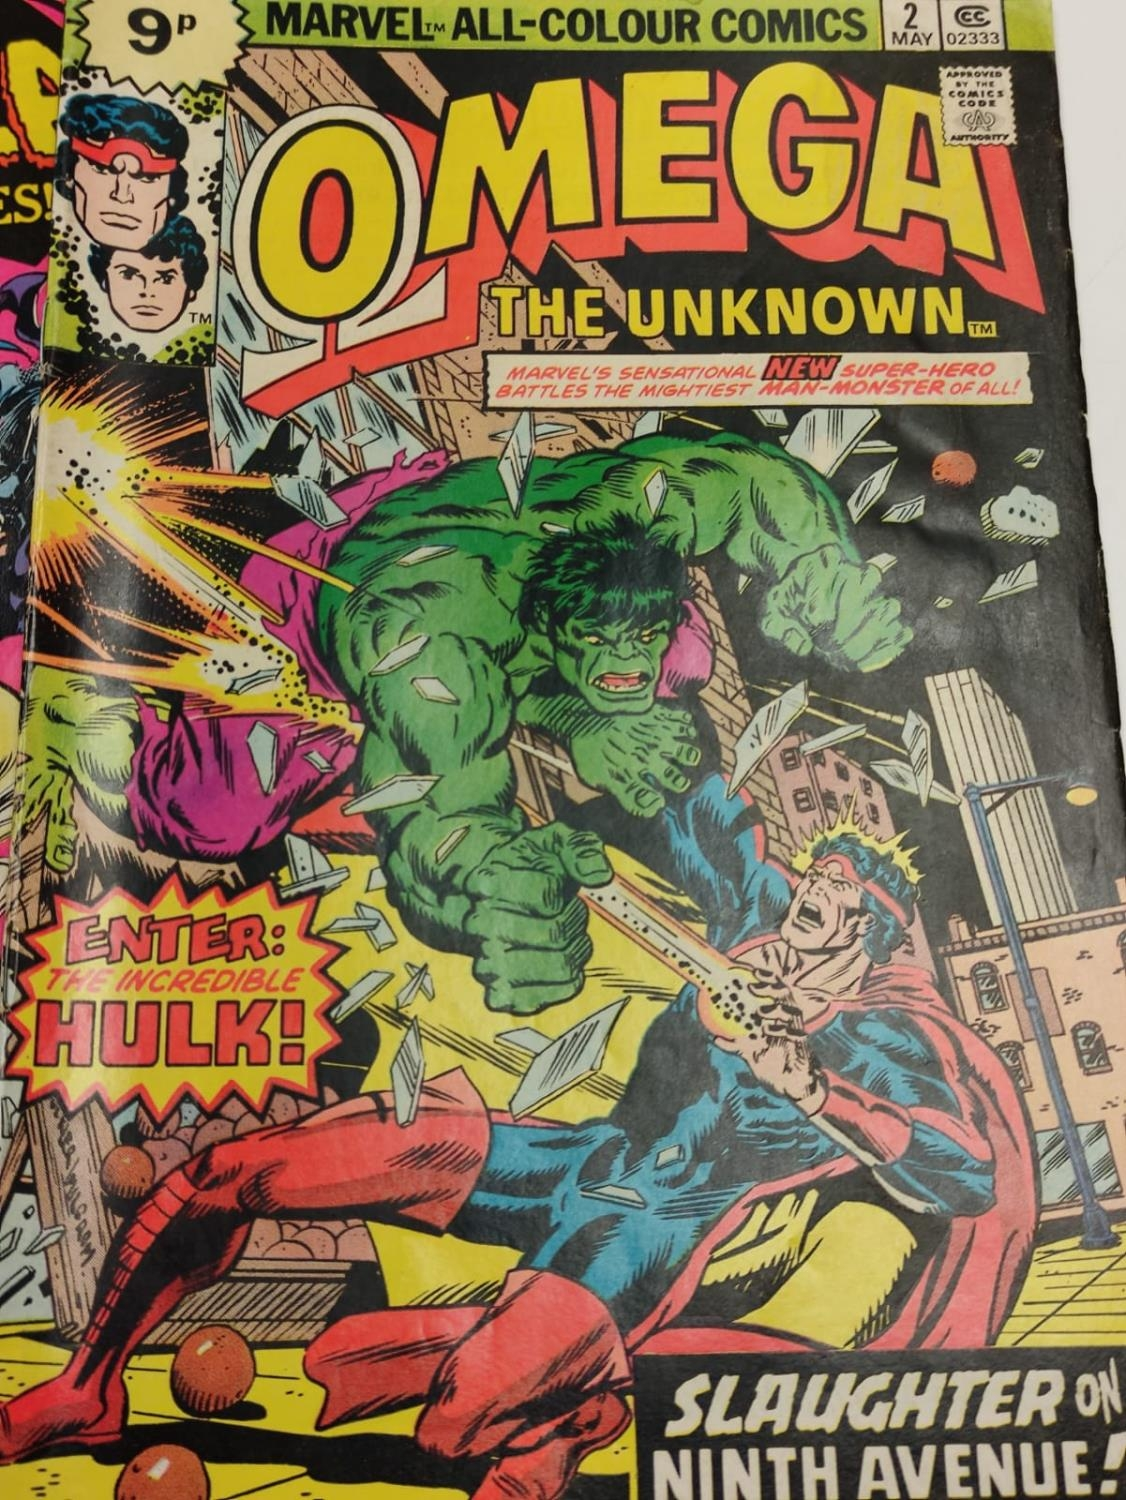 5 editions of Special Vintage Marvel Comics including 'The Tomb of Dracula'. - Image 8 of 15